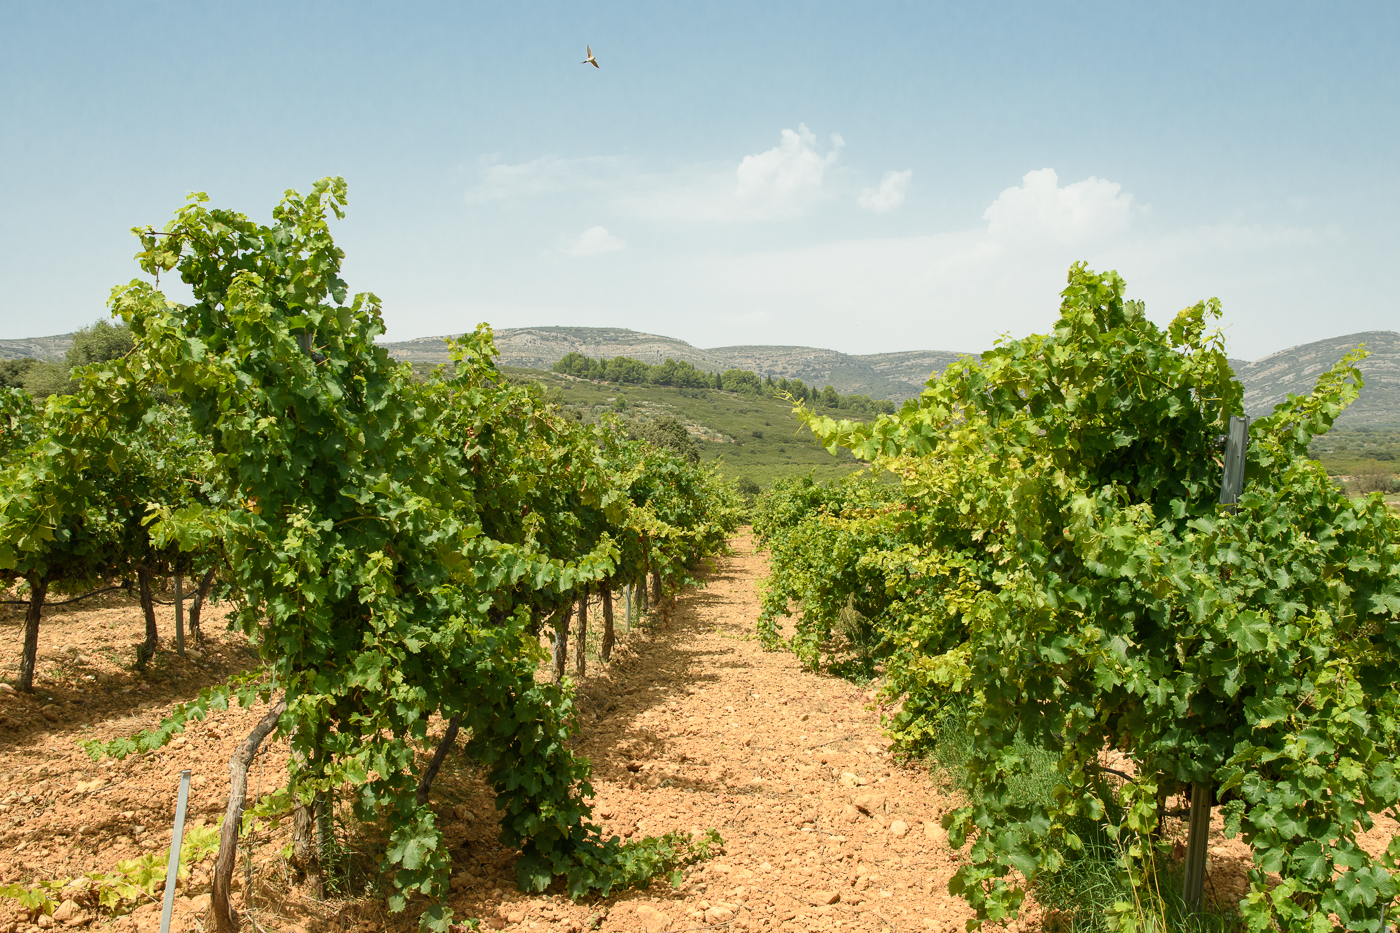 The vines and a soaring bird